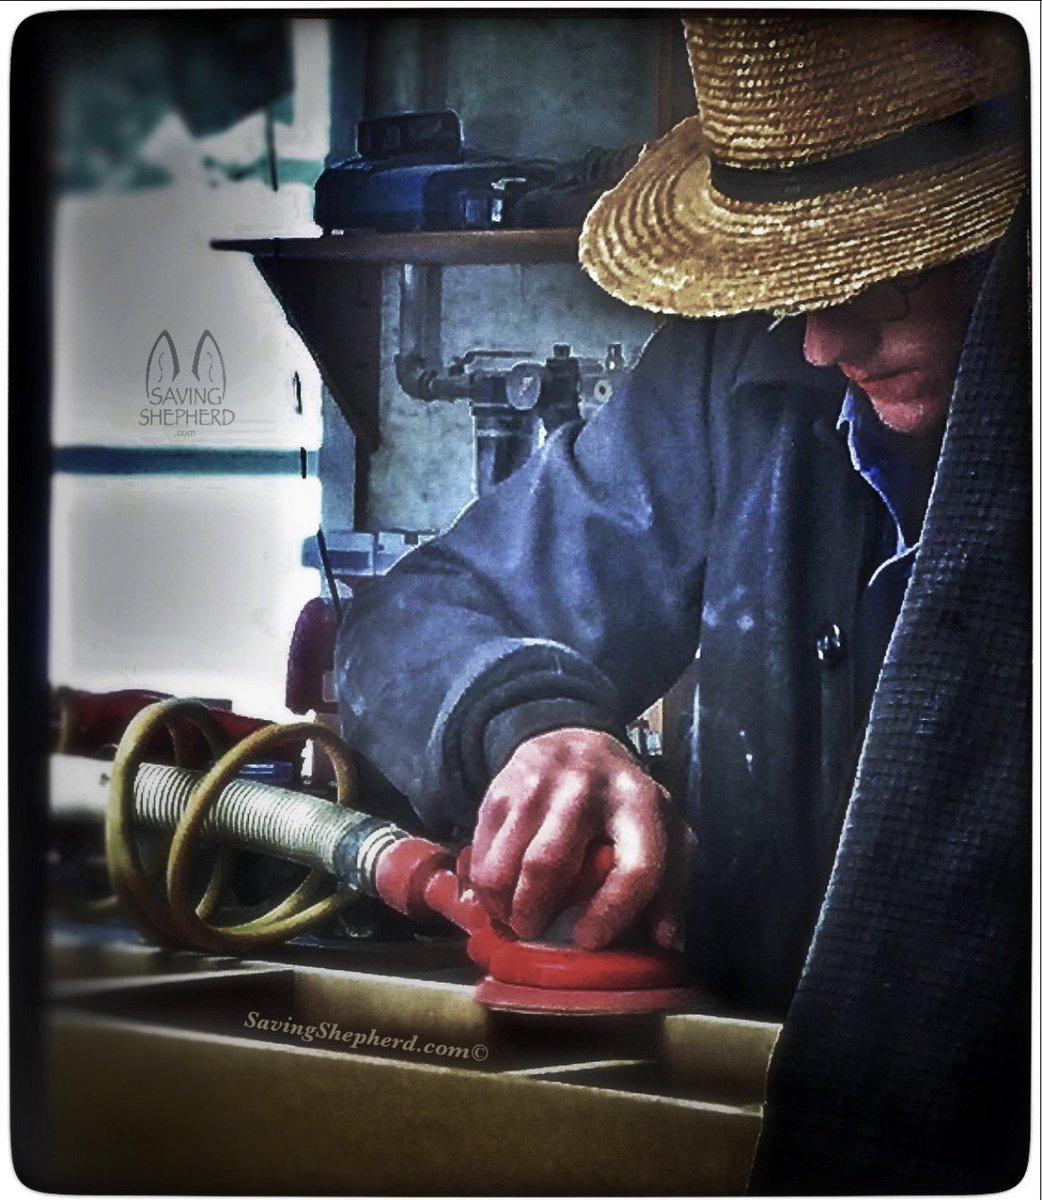 "Today's Truth ""Oiled machinery runs smooth."" #Amish #proverb  #care #craft #quoteoftheday #photooftheday #tool #maintenance #quote #craftsmanship #tools #quotes #savingshepherd #life #photography #country #picoftheday #picture #photo #workmanship #madeinusa #travel #pic #usa 🇺🇸"